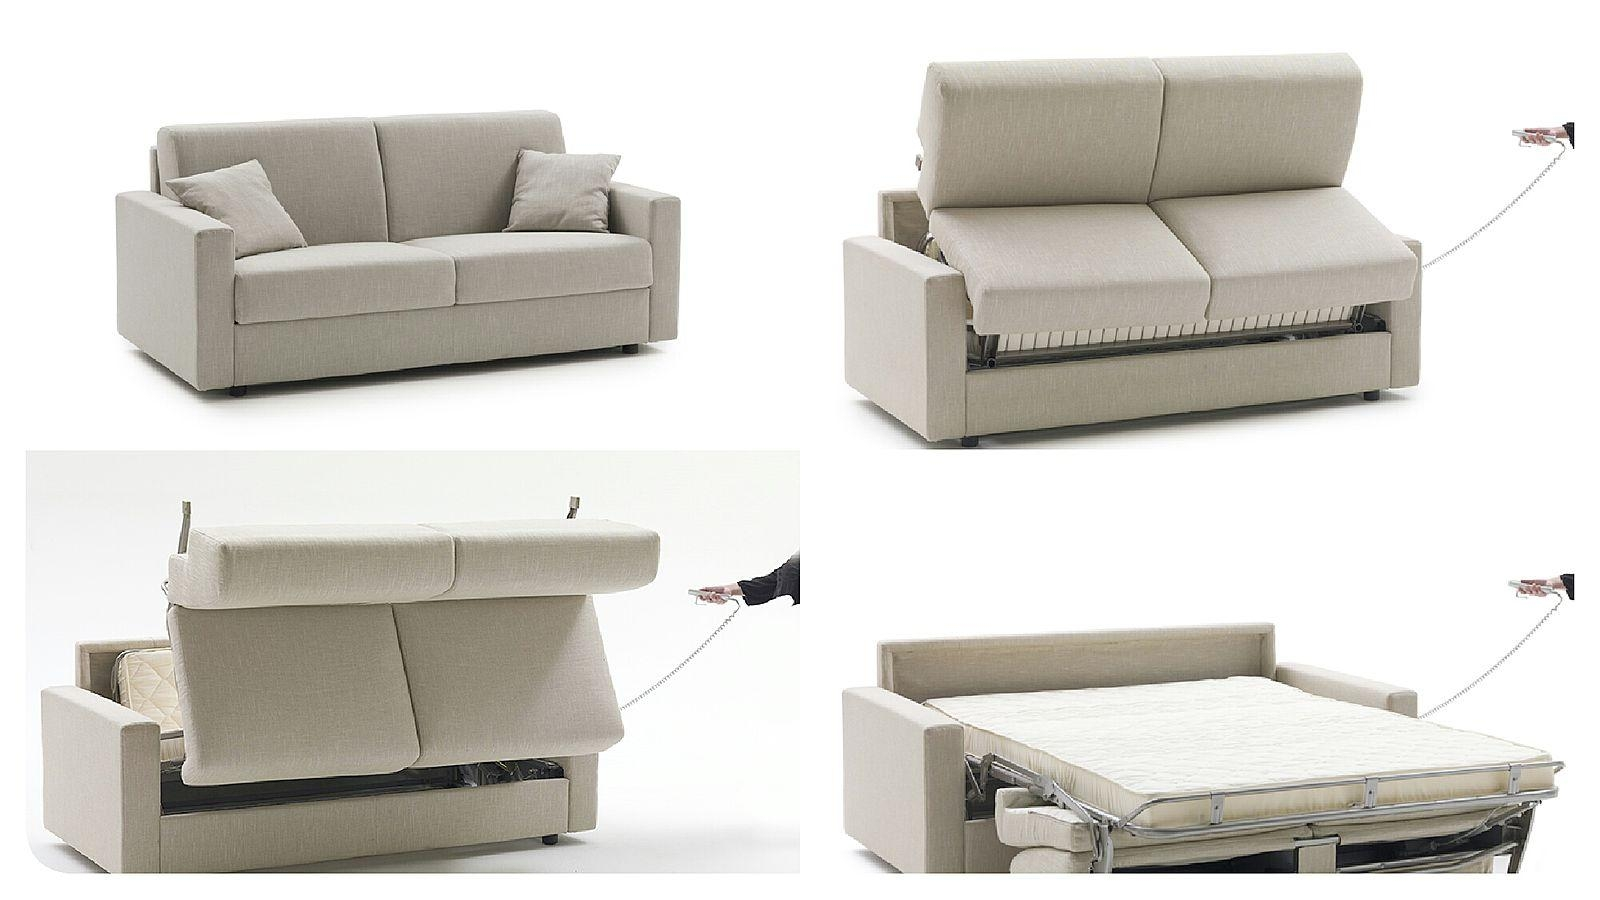 electric sleeper sofa cote style sofas 20 best beds ideas